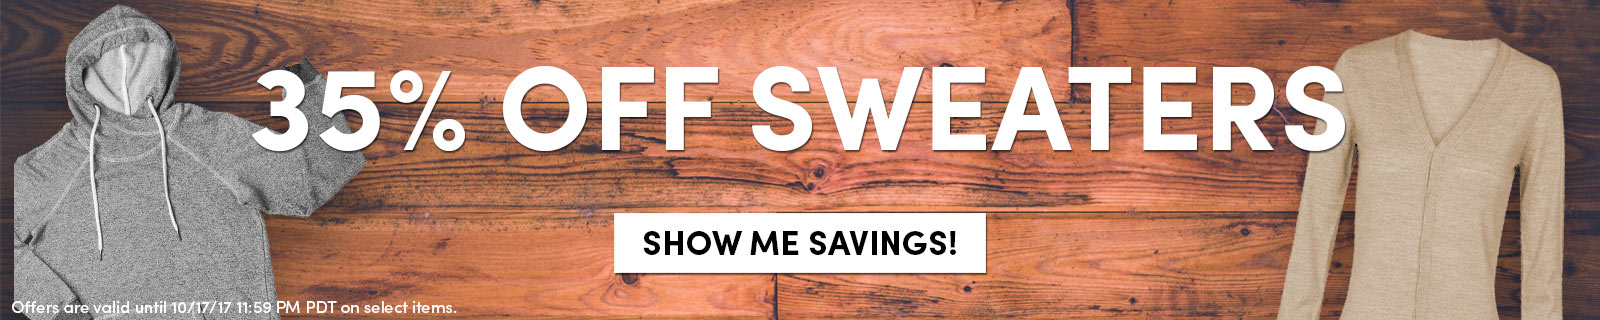 35% OFF Sweaters [Show Me Savings!]